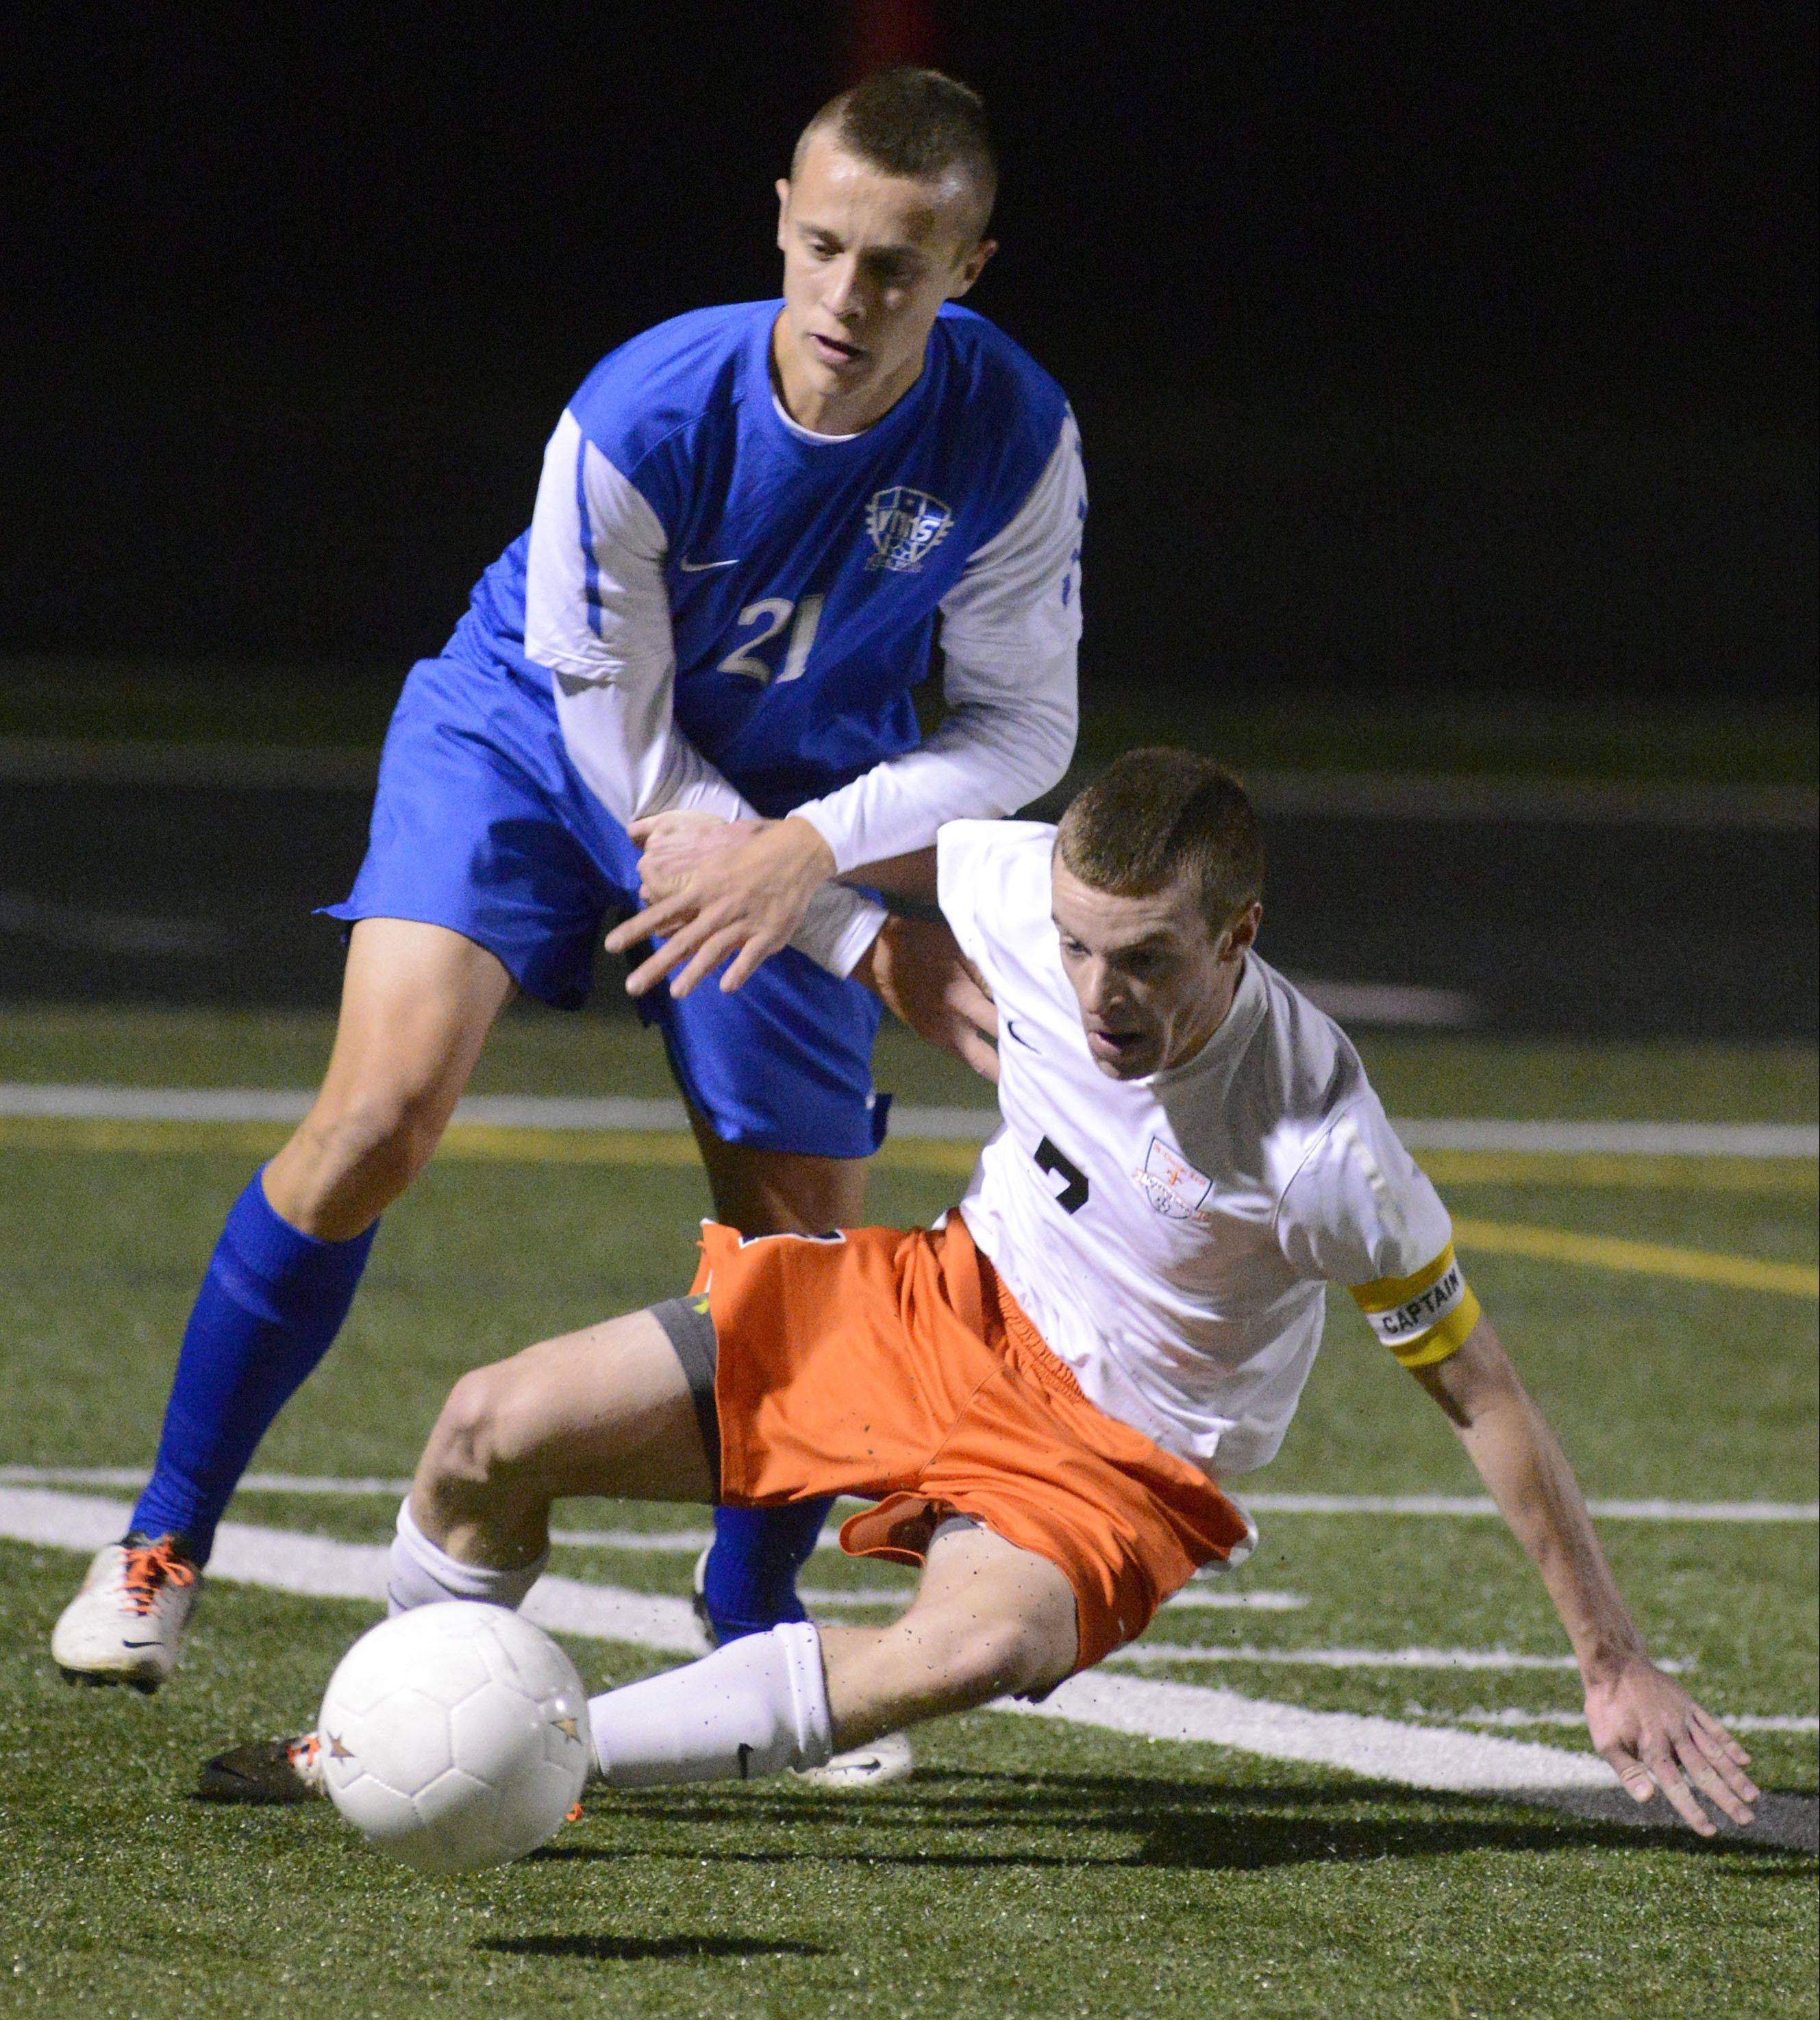 Wheaton North�s Zach Oslund and St. Charles East�s Jacob Sterling fight for the ball.